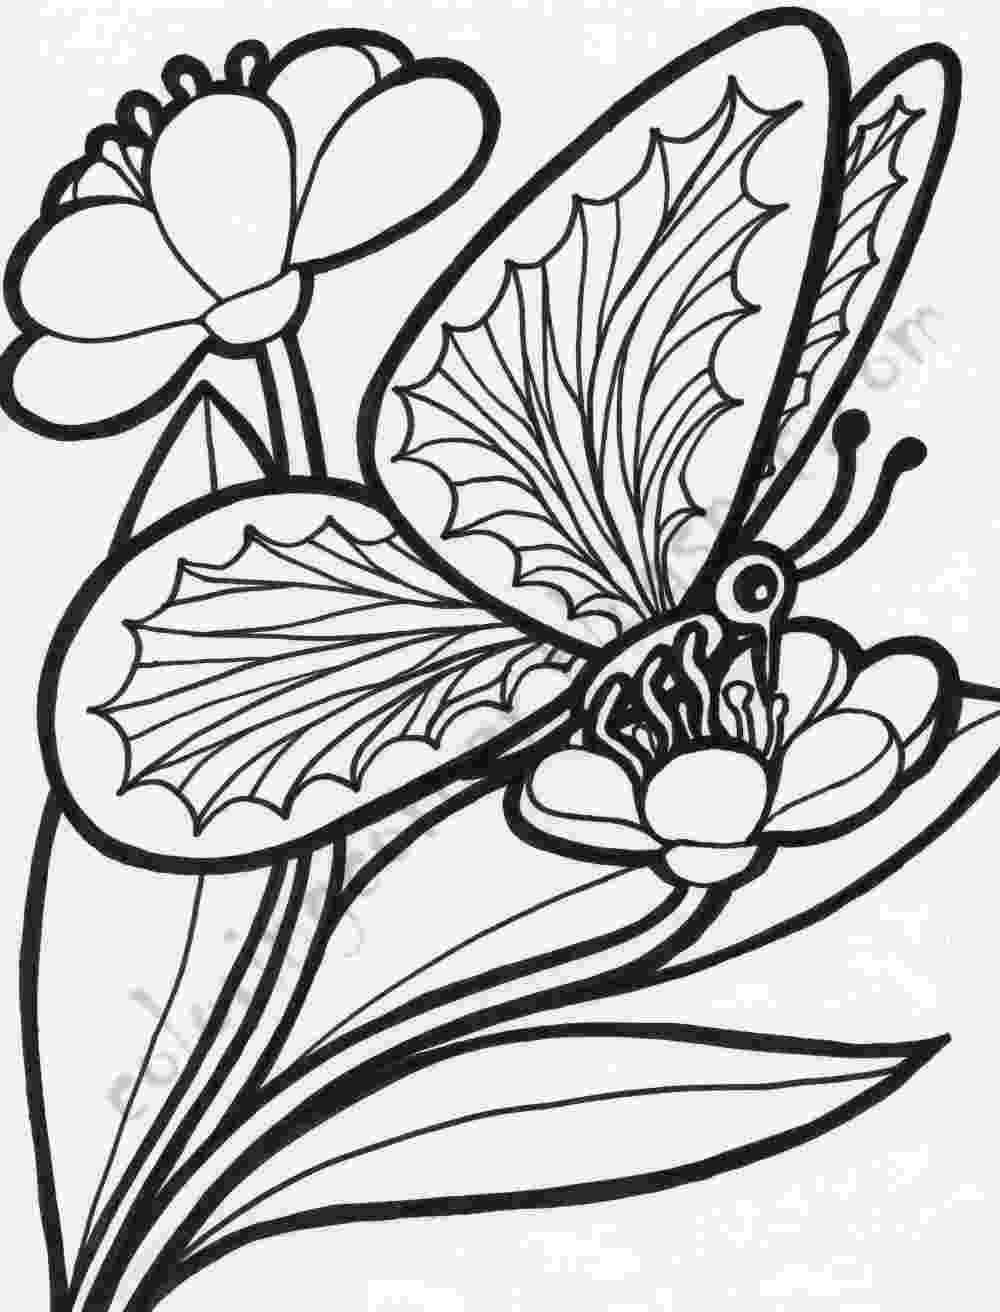 colouring pages for flowers flower coloring pages for adults best coloring pages for flowers pages colouring for